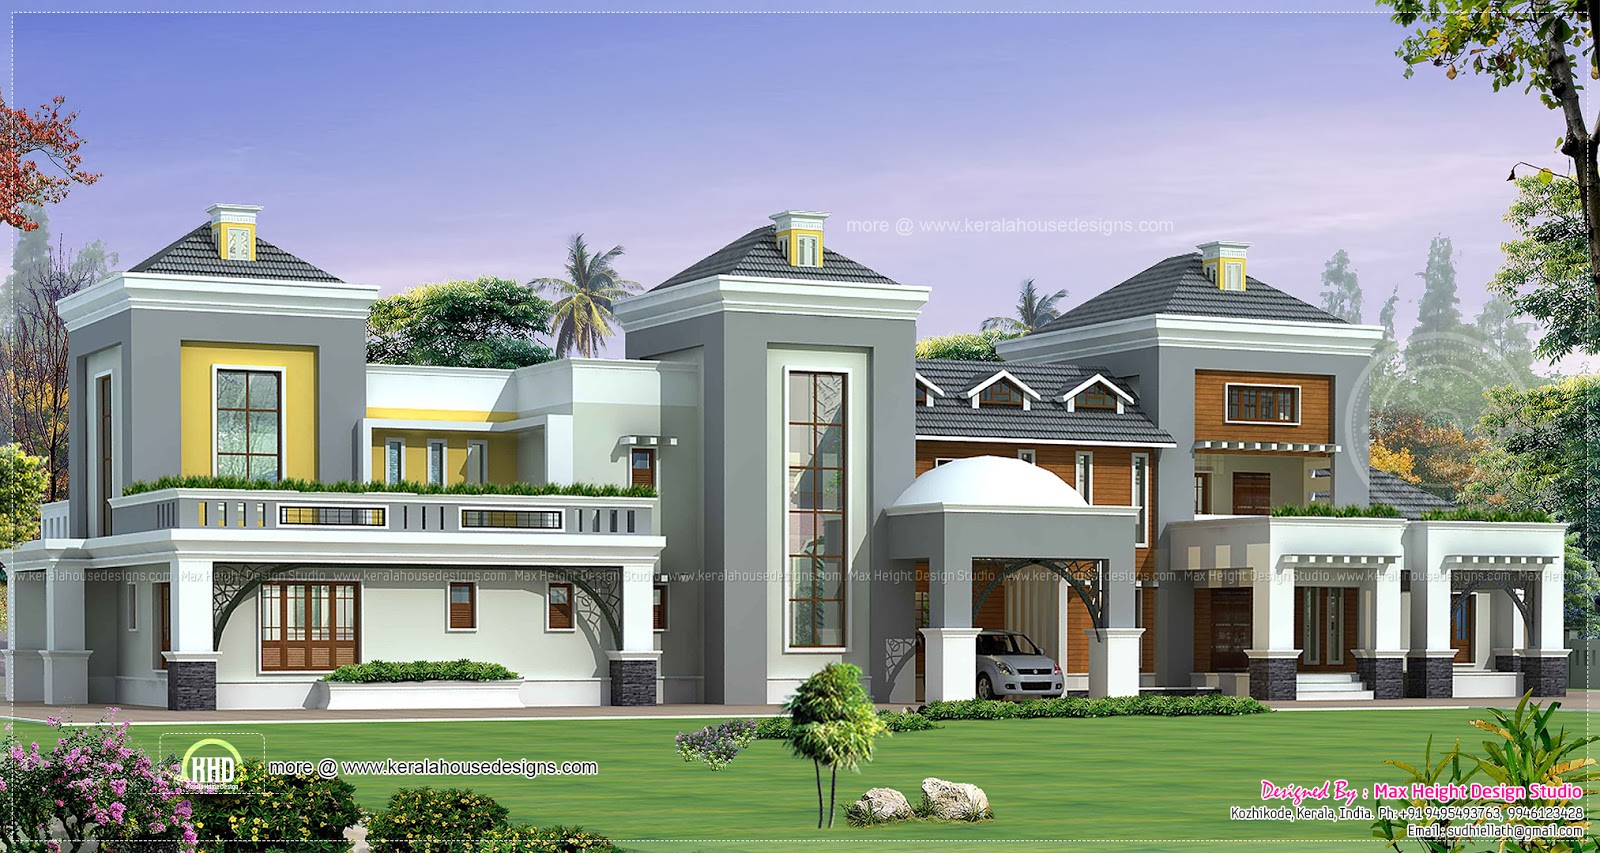 House plans executive bungalow pomegranate pie for New luxury home plans